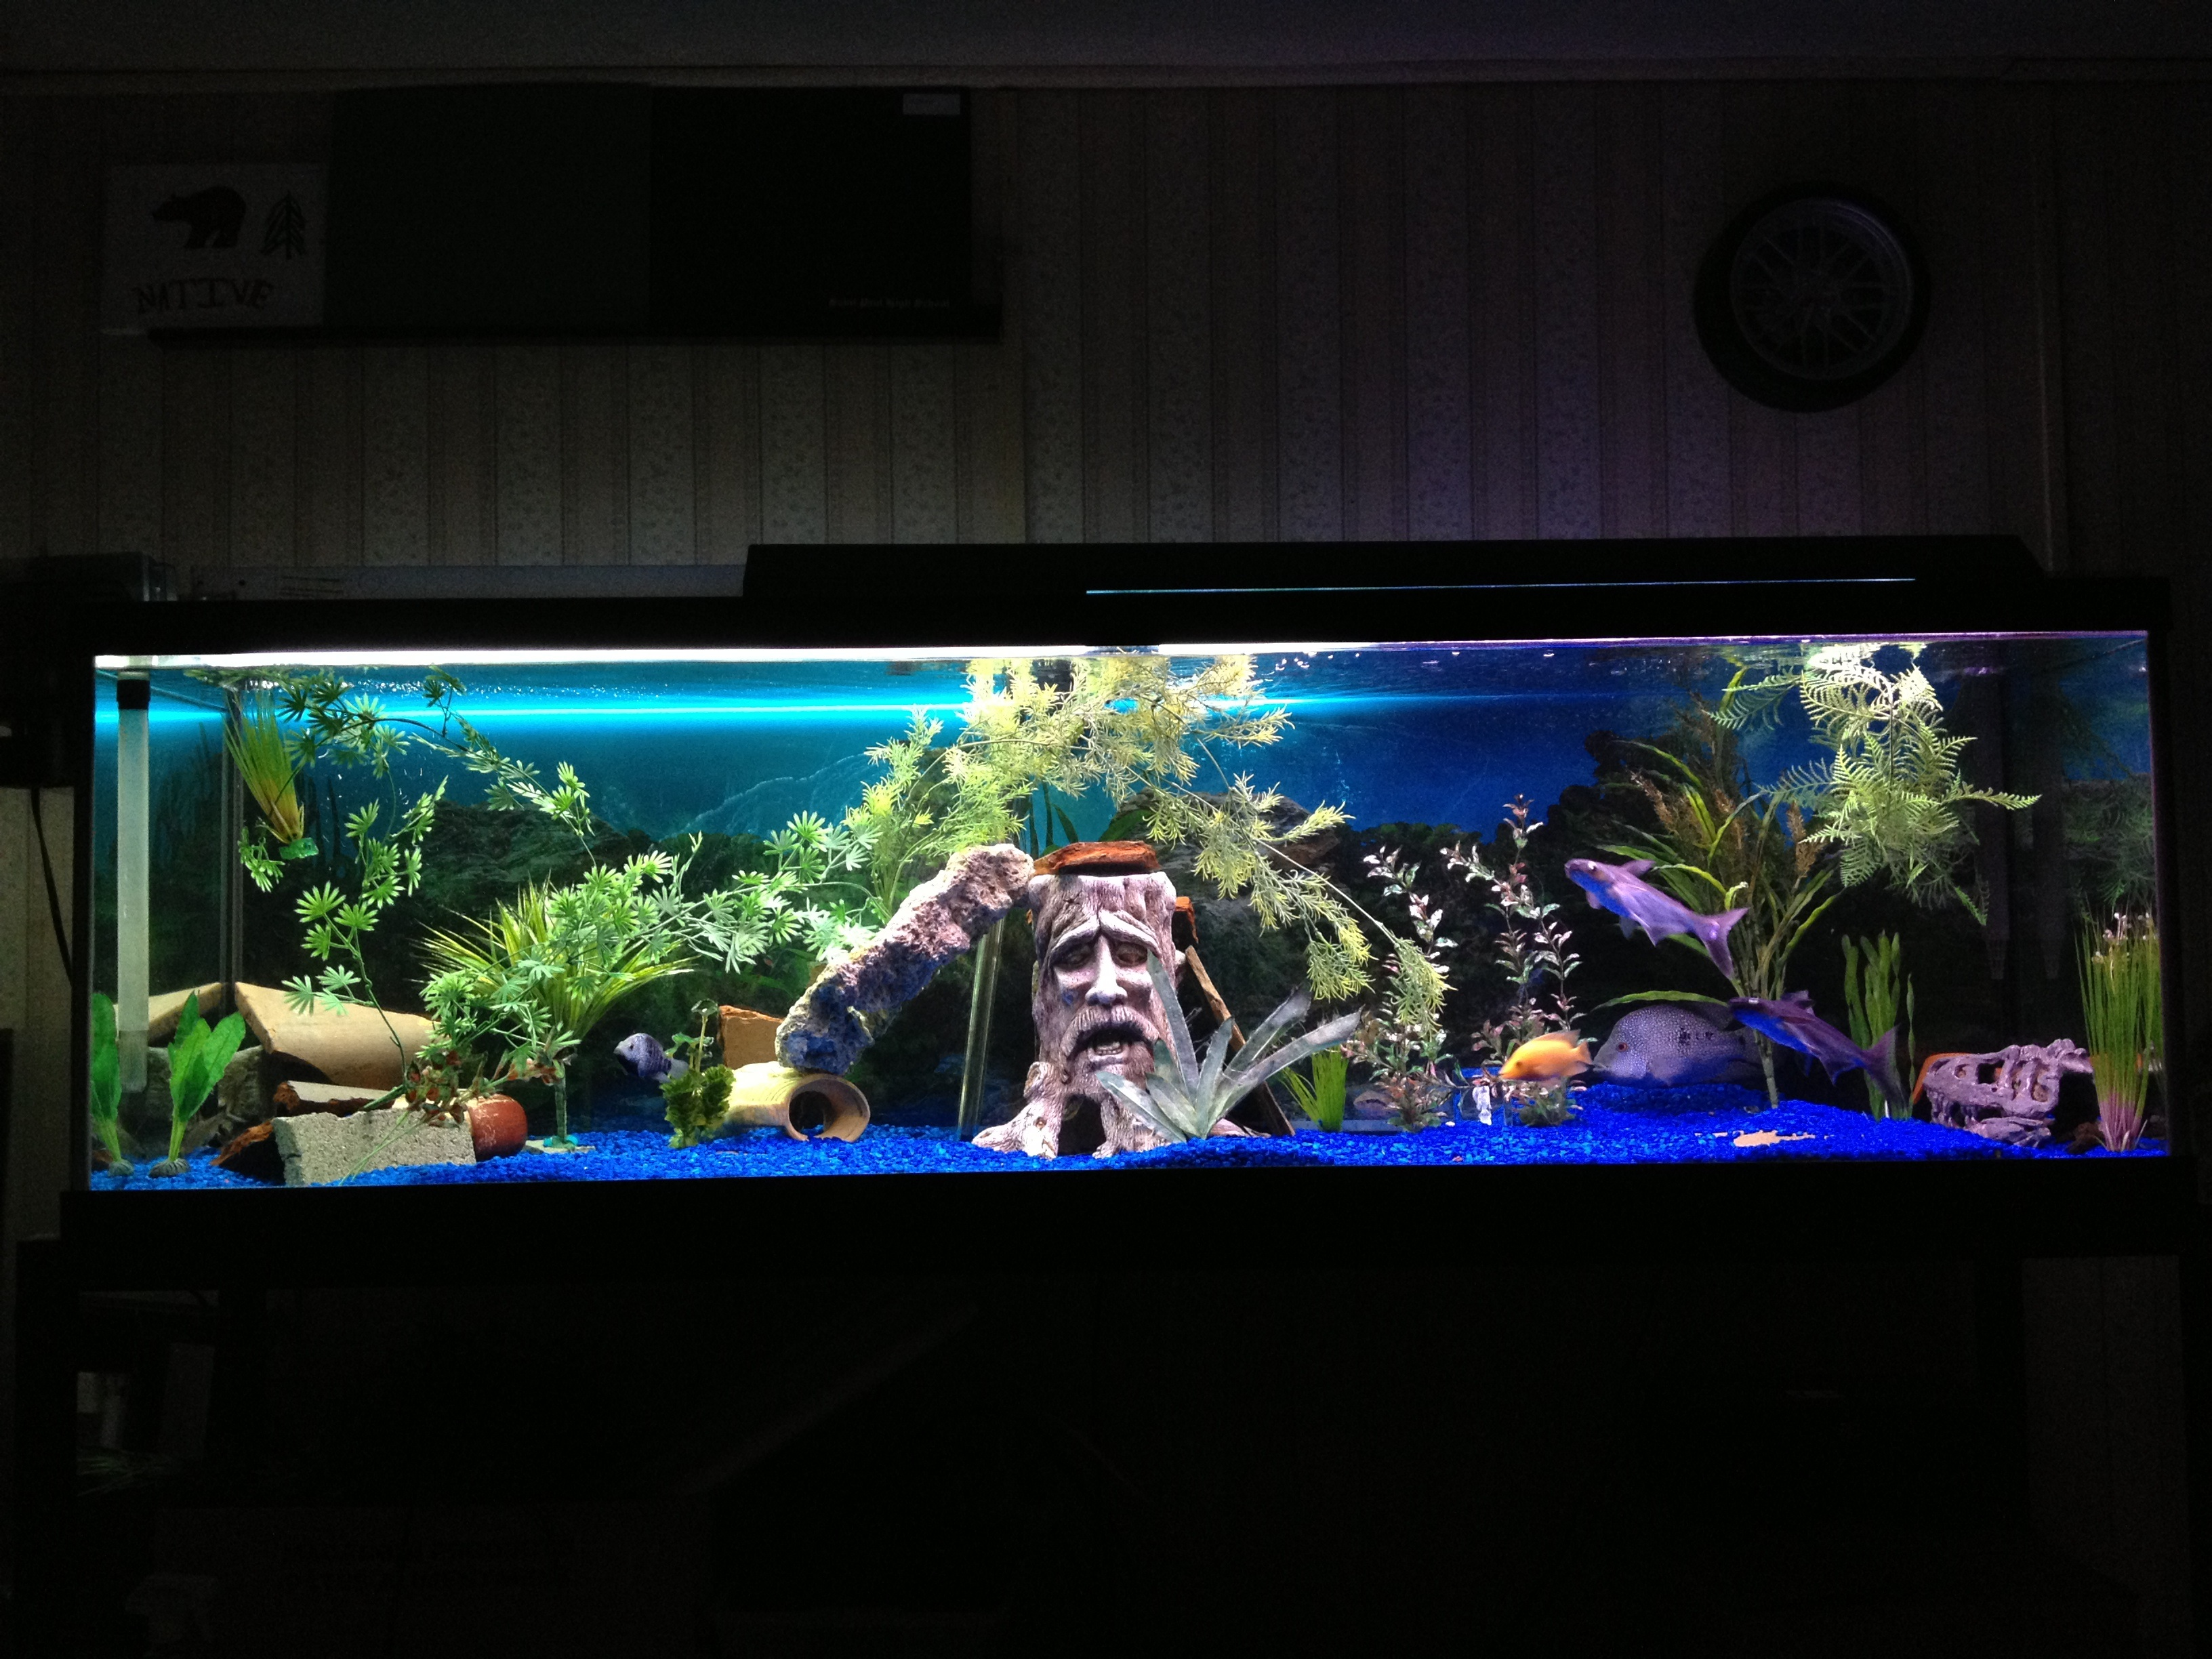 Cichlidscom 125 gallon long saltwater green spotted puffer for 125 gallon fish tank for sale